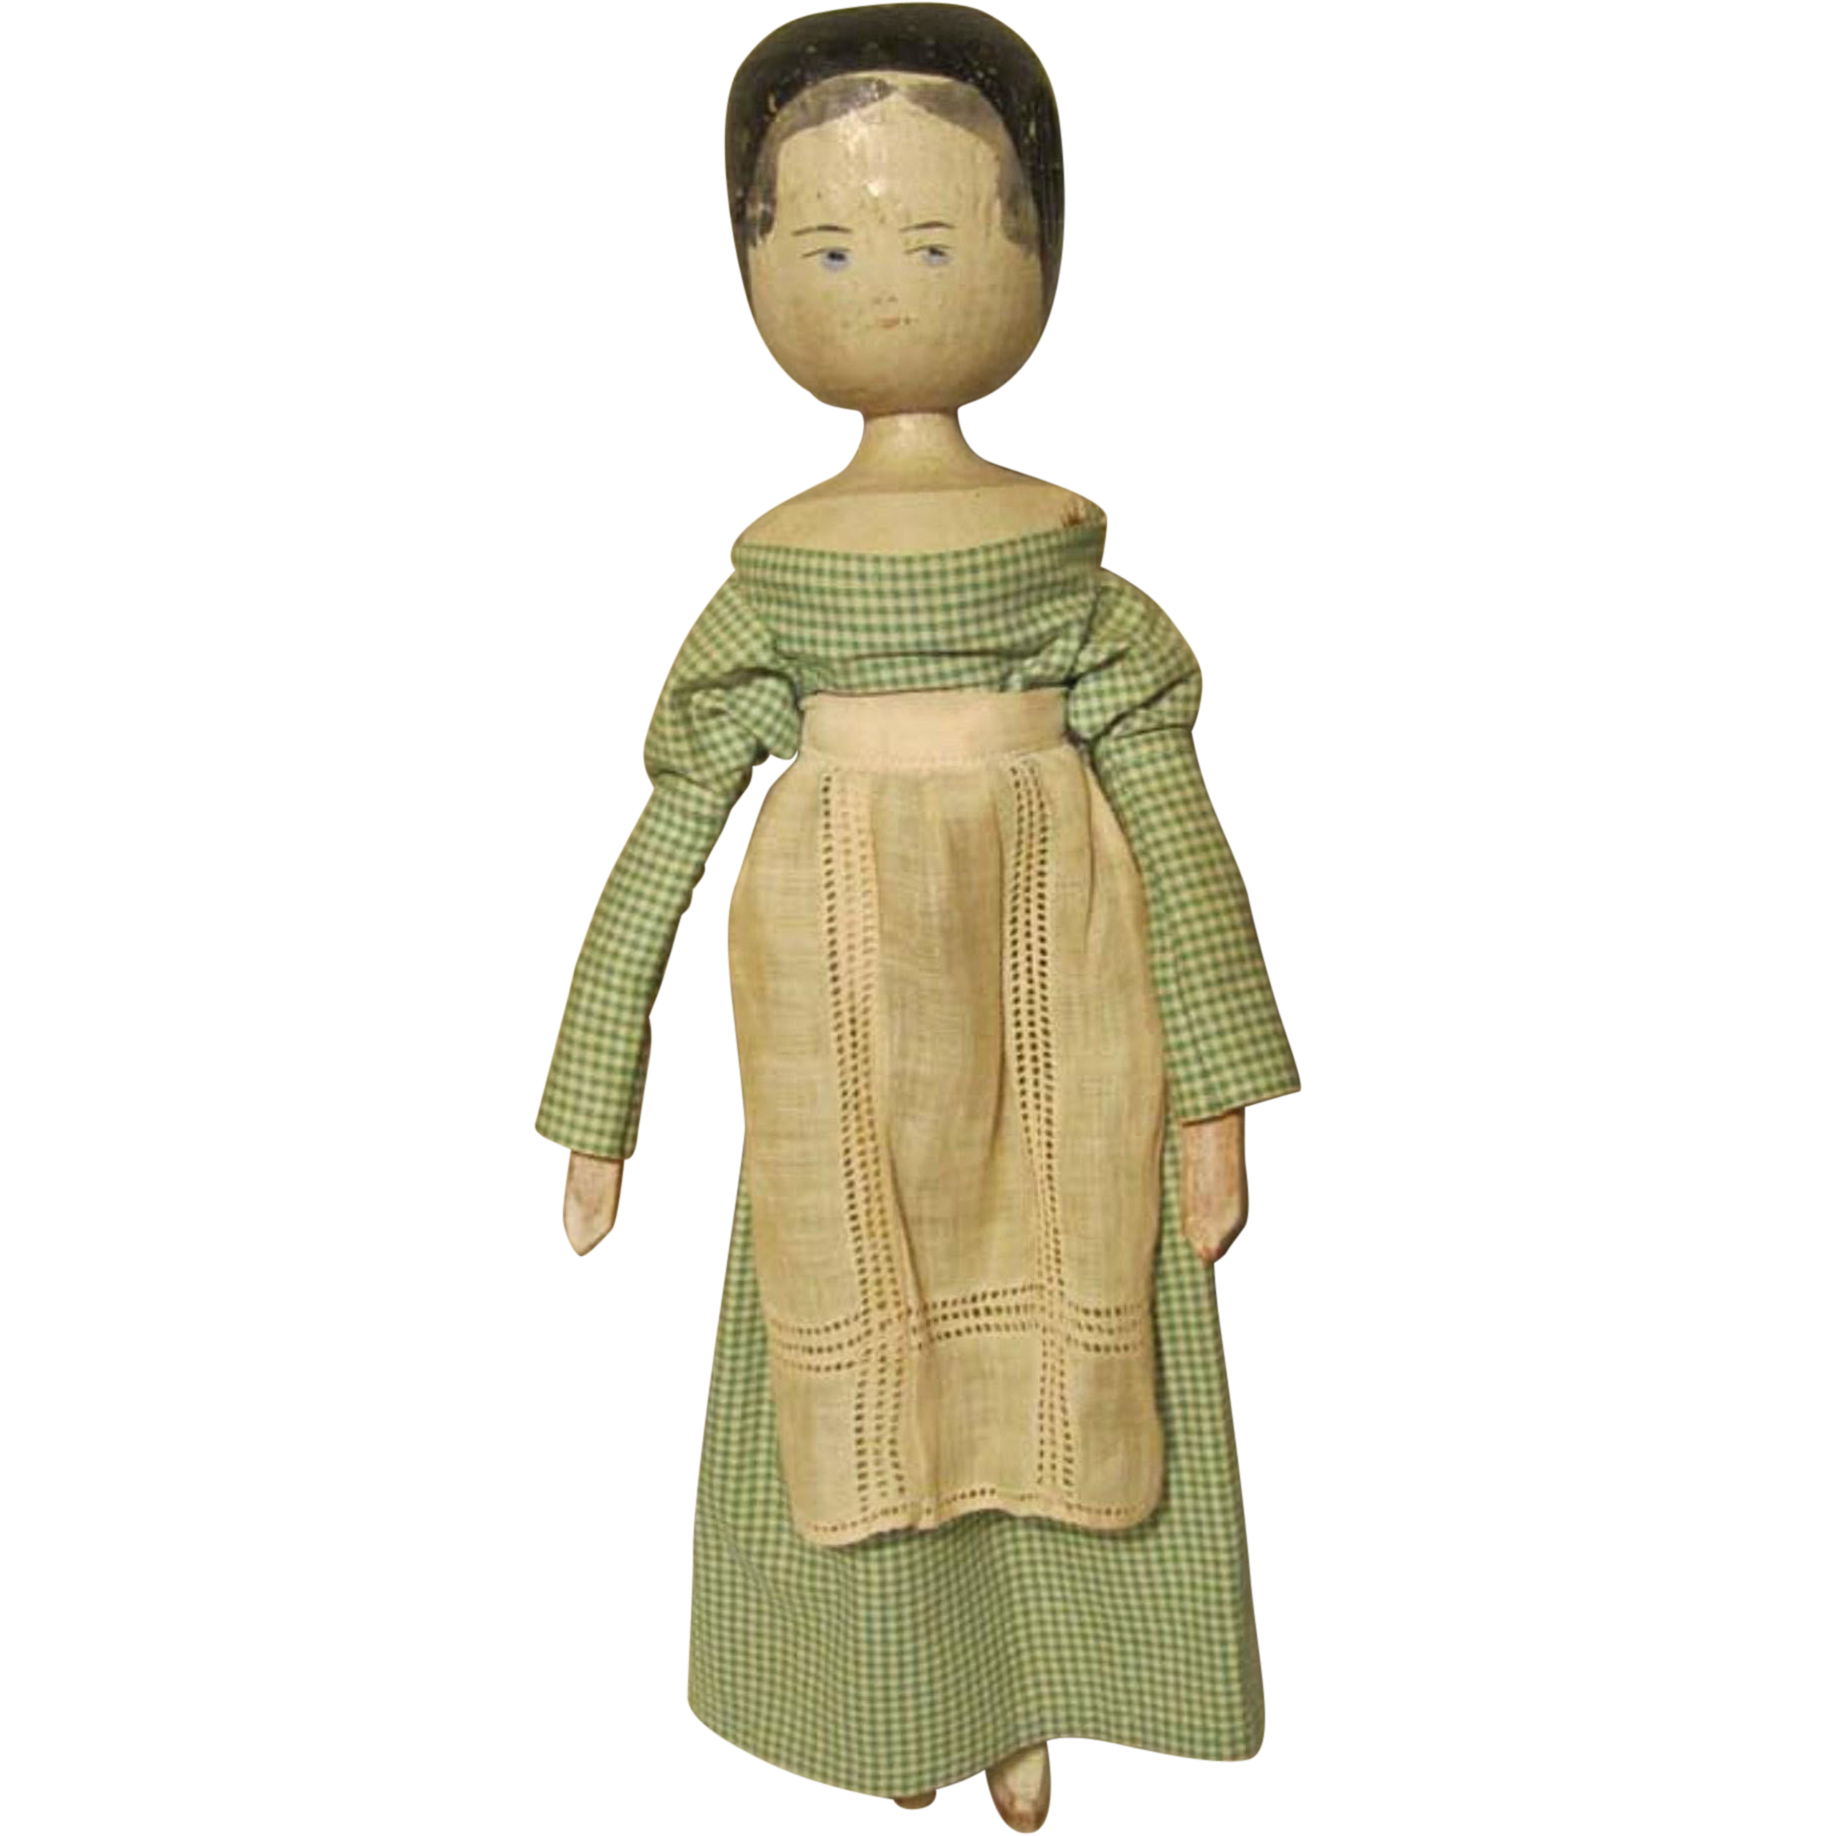 Amazing photo of Early Peg Wooden Grodner Tal Doll Hand Made Clothes from rubylane sold  with #8E783D color and 1836x1836 pixels